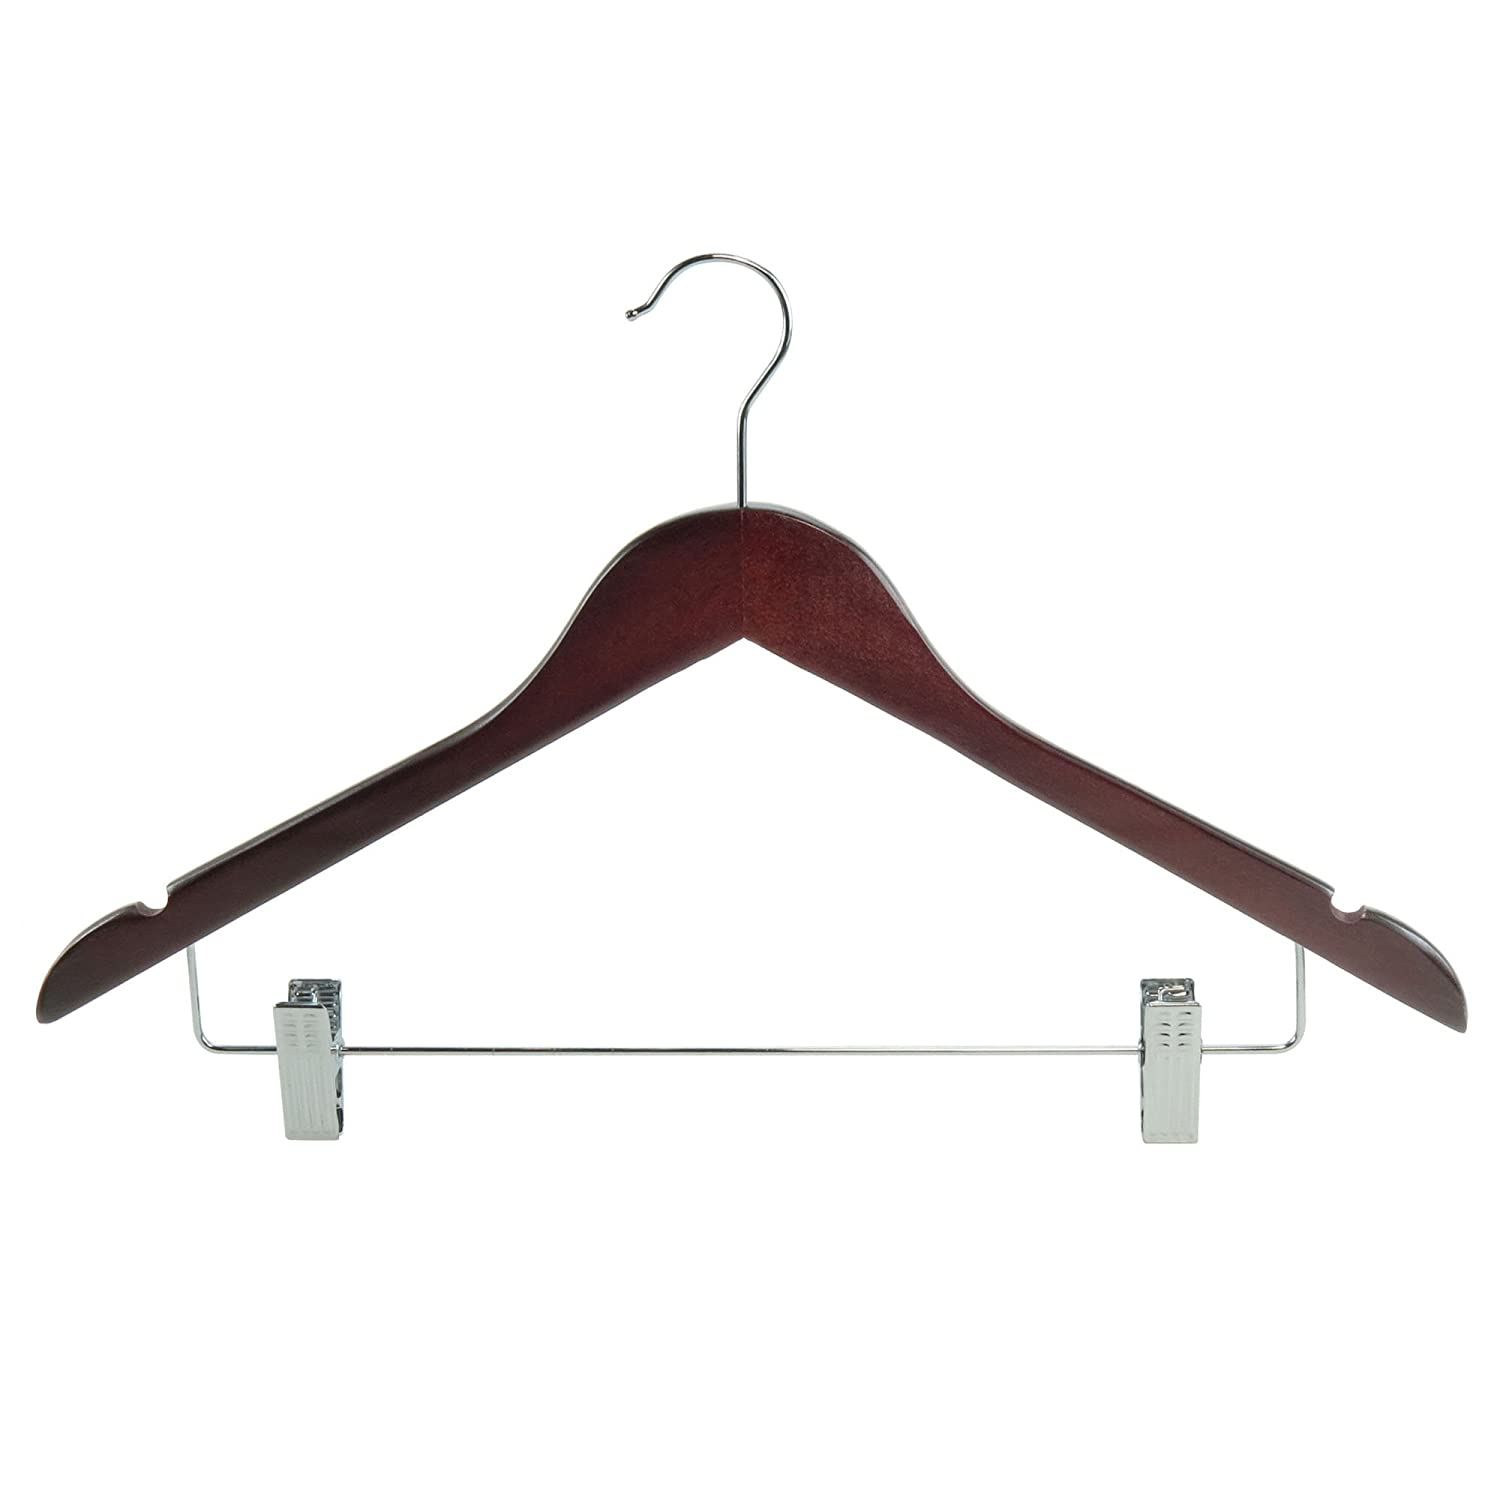 HANGERWORLD 45cm Mahogany Wooden Clothes Hangers with Trouser/Skirt Clips, Pack of 25 WH-45-CLIP-MAHOGANY_25